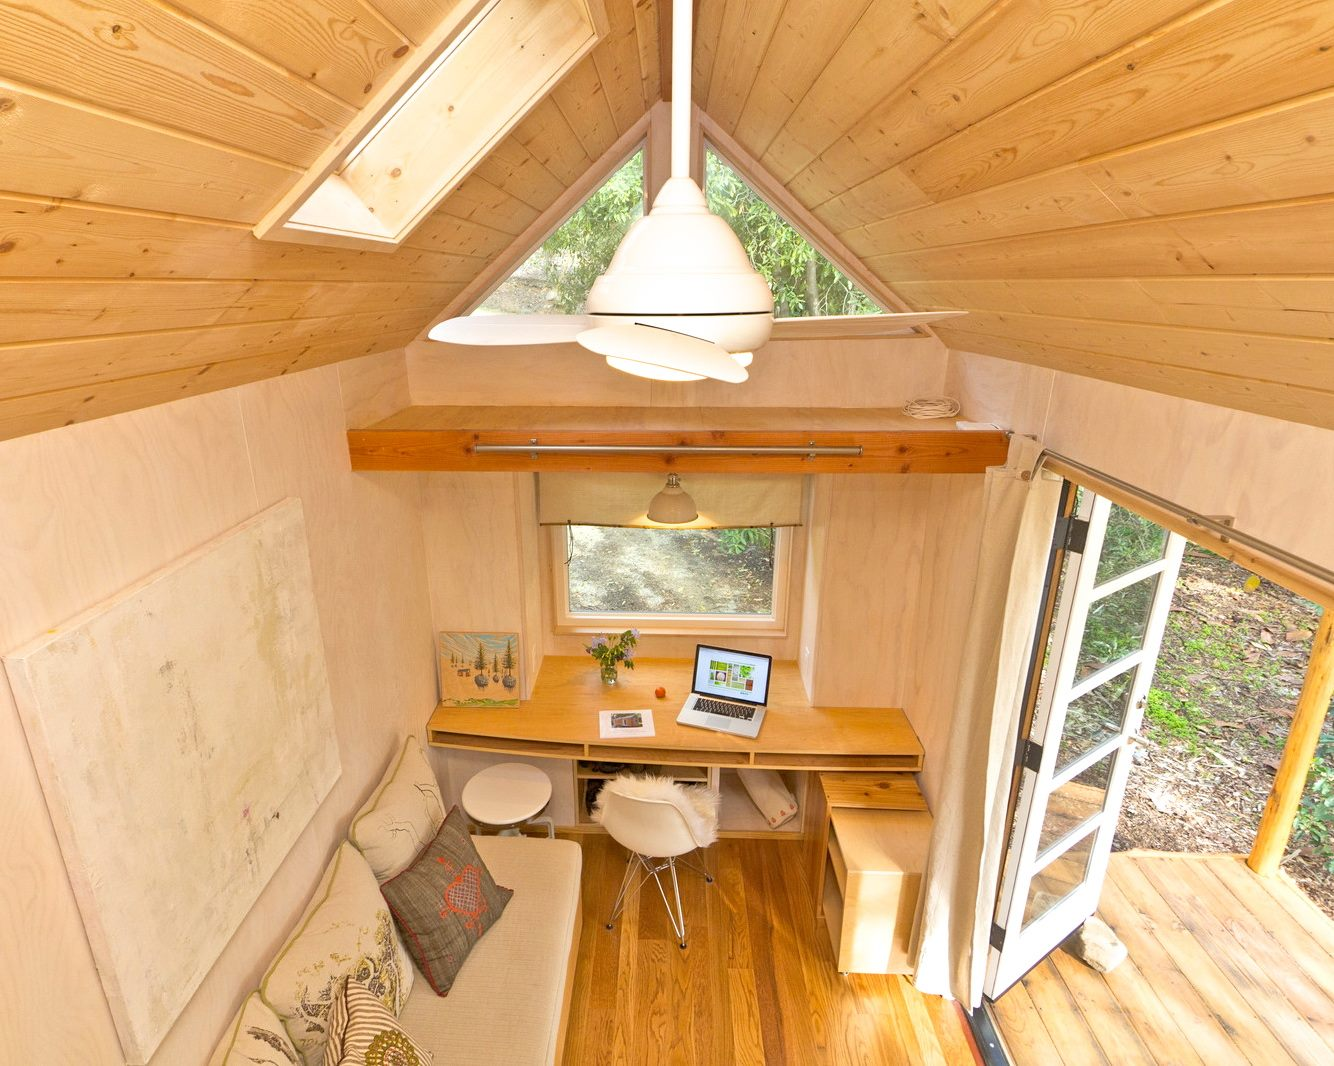 vinas tiny house 2 - Tiny Houses California